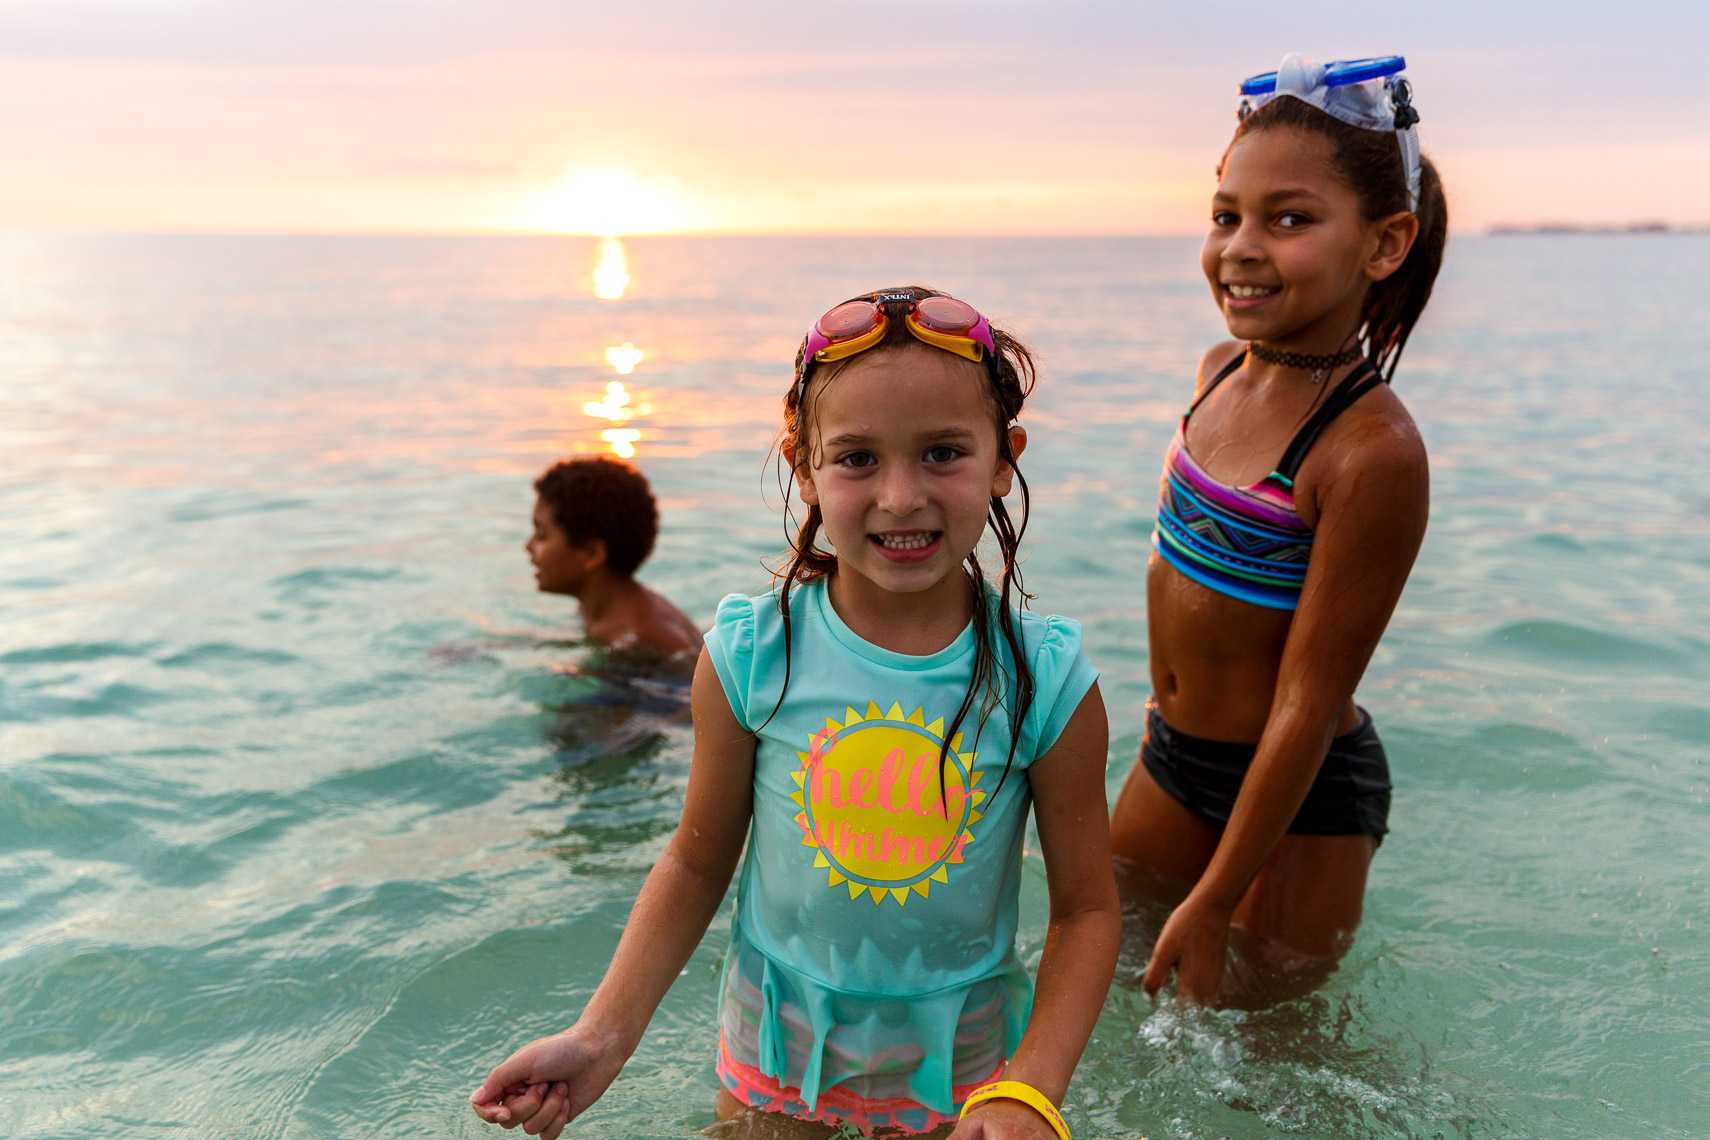 Children play in the Gulf of Mexico